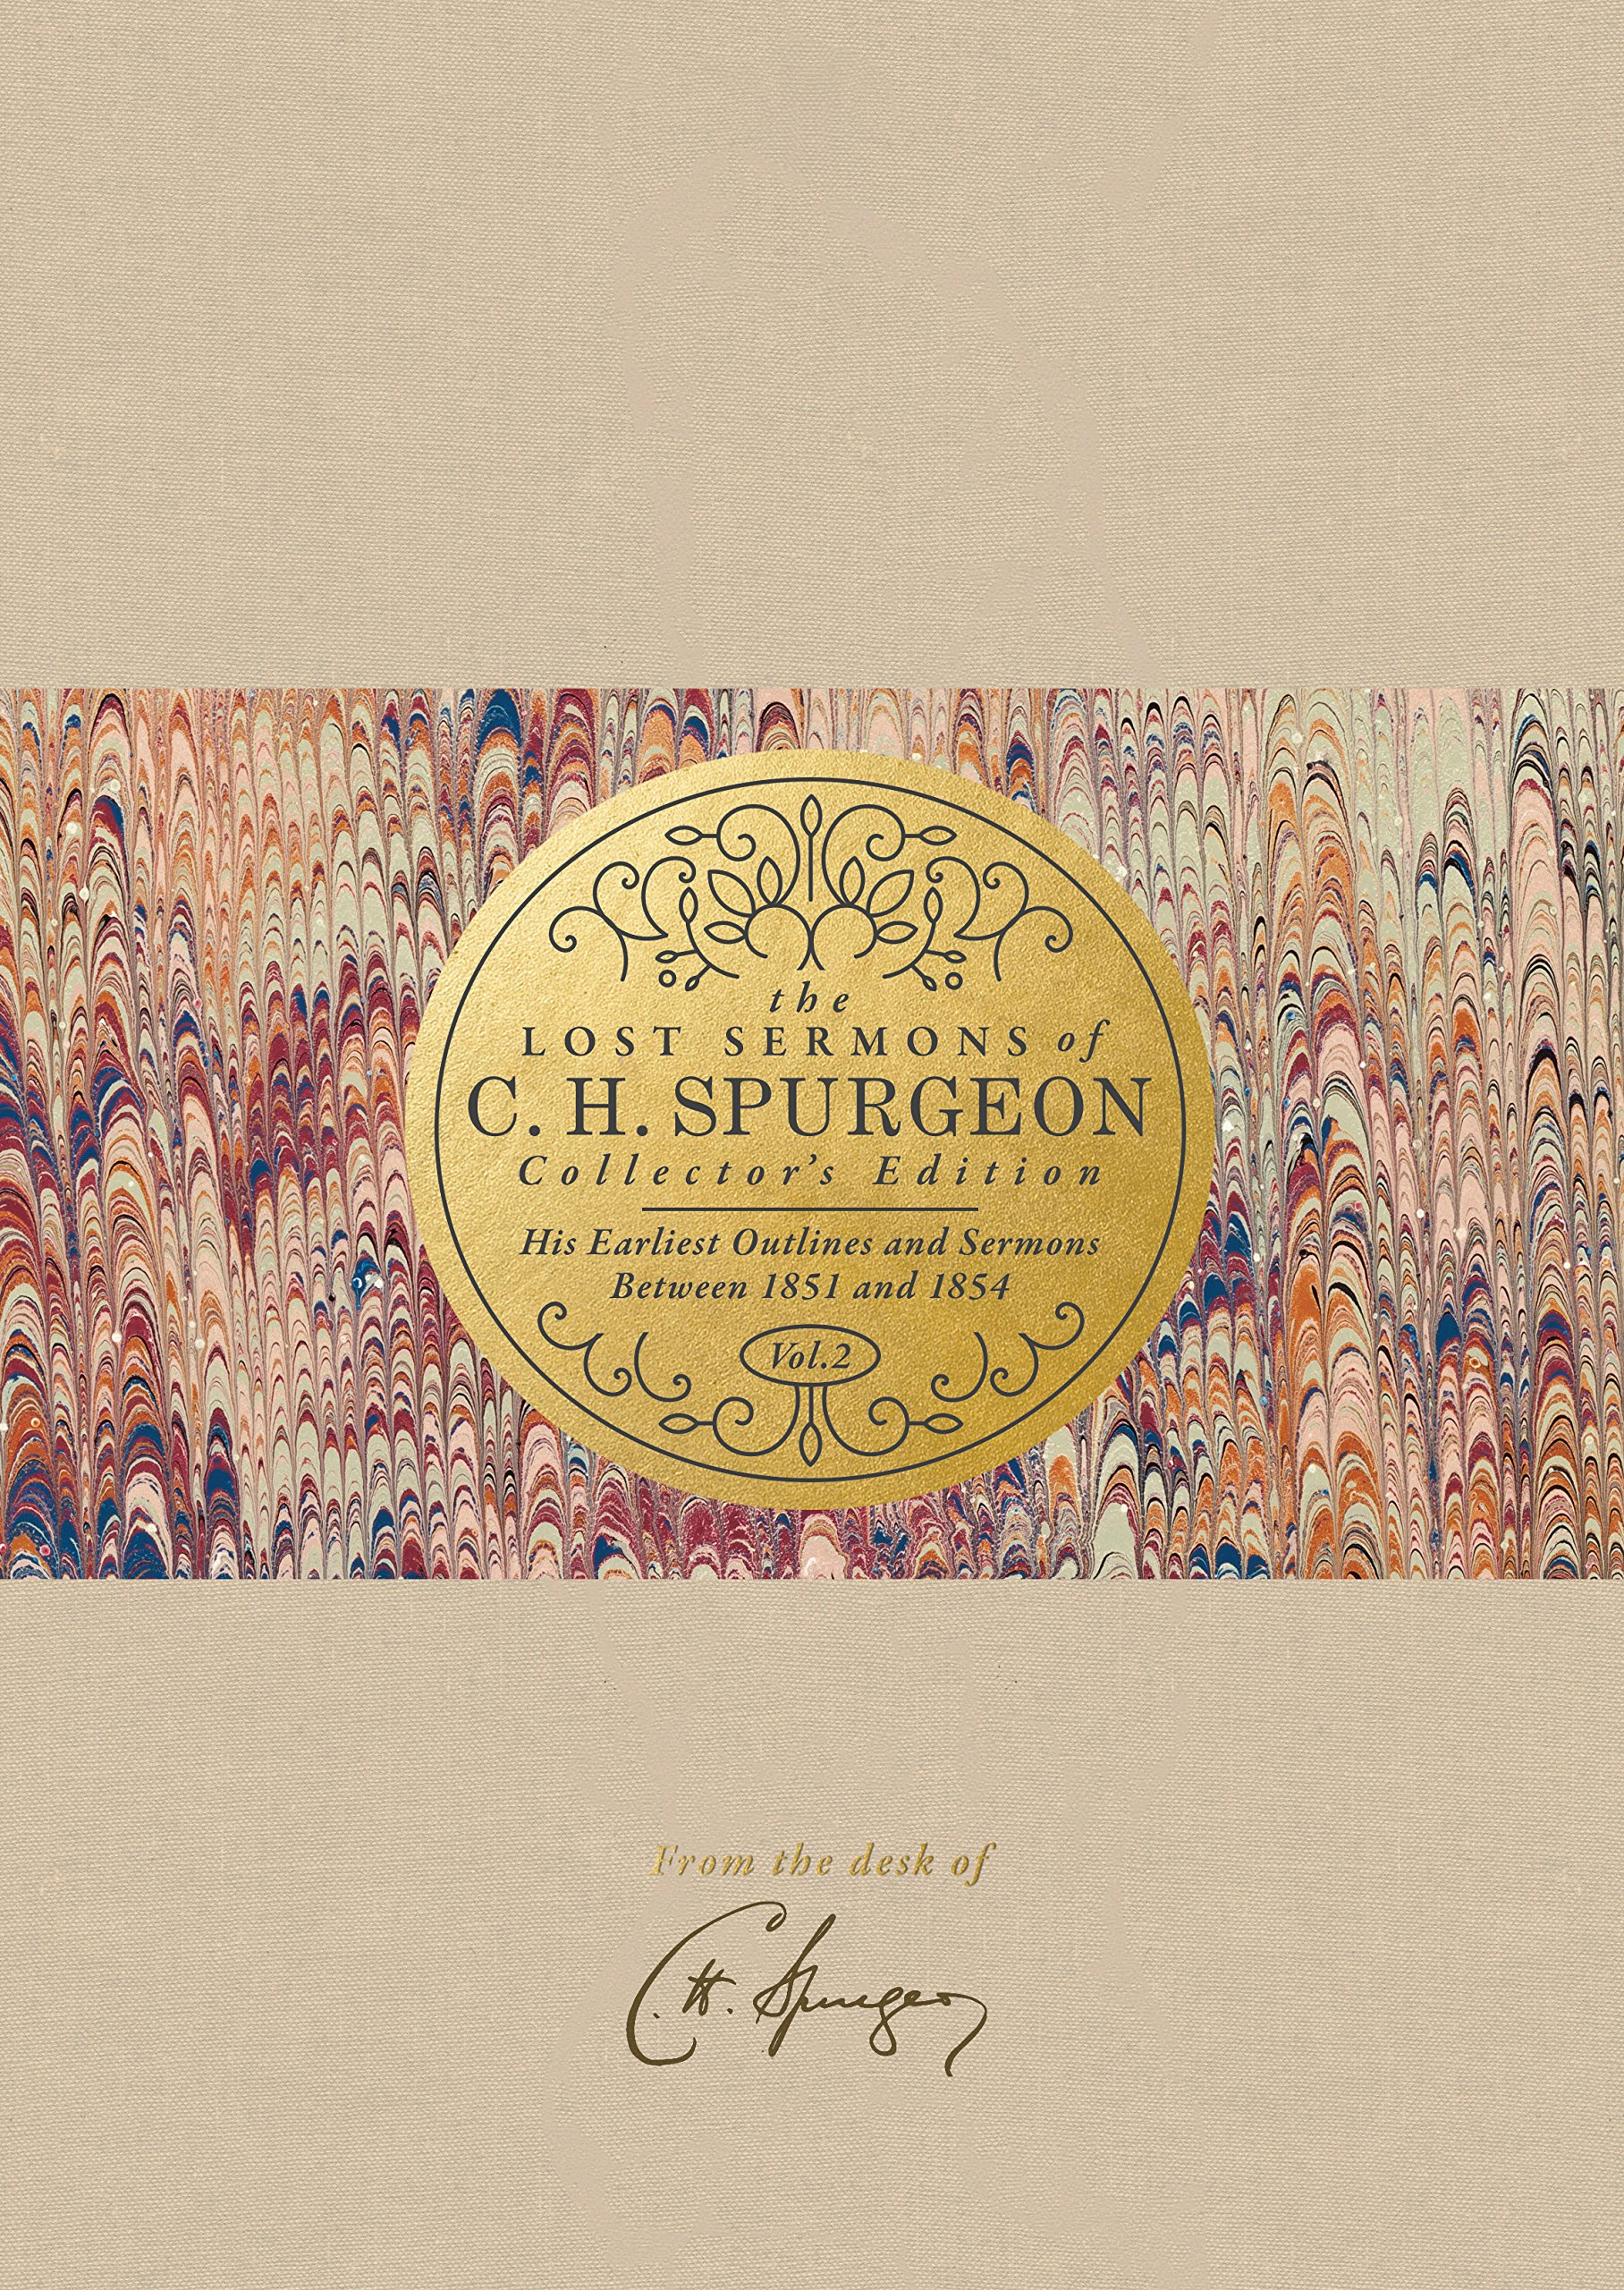 The Lost Sermons Of C H Spurgeon Volume II Collectors Edition His Earliest Outlines And Between 1851 1854 Christian T George